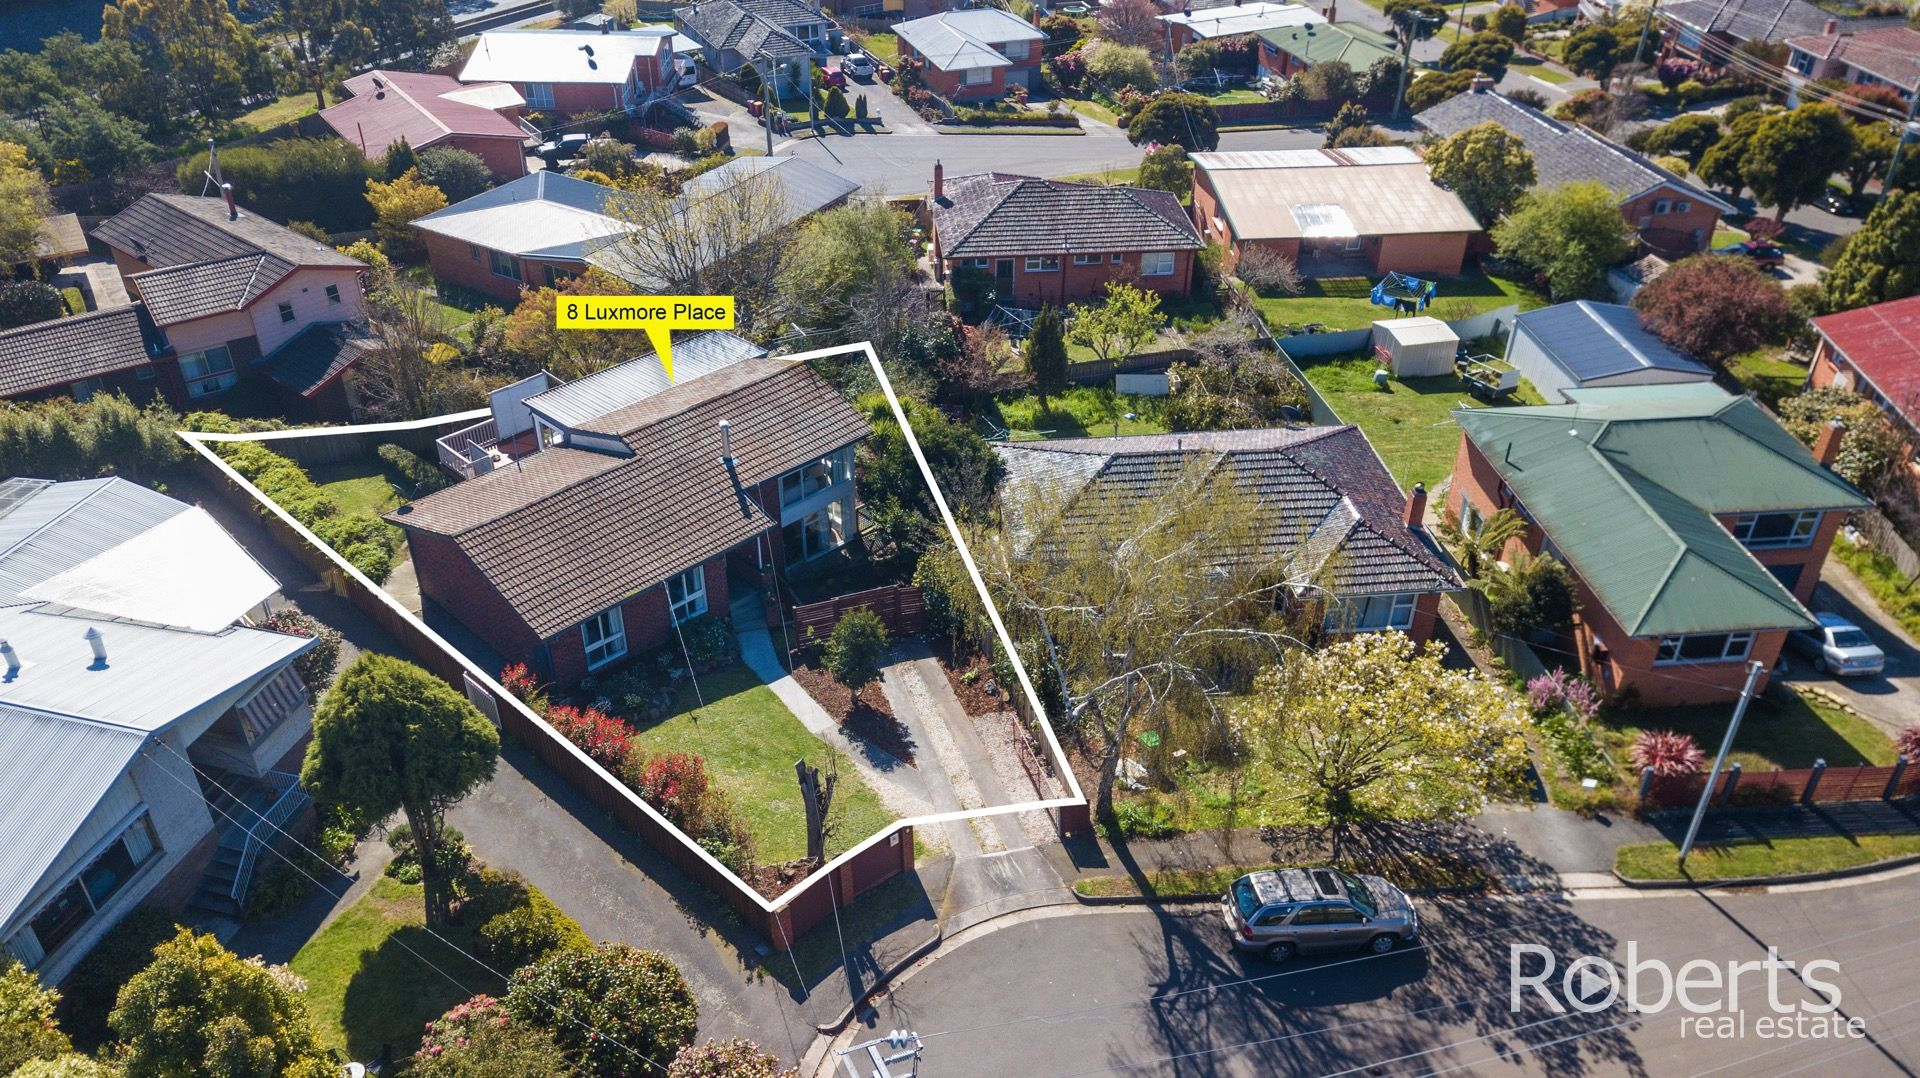 Sold 8 Luxmore Place Prospect TAS 7250 on 21 Dec 2018